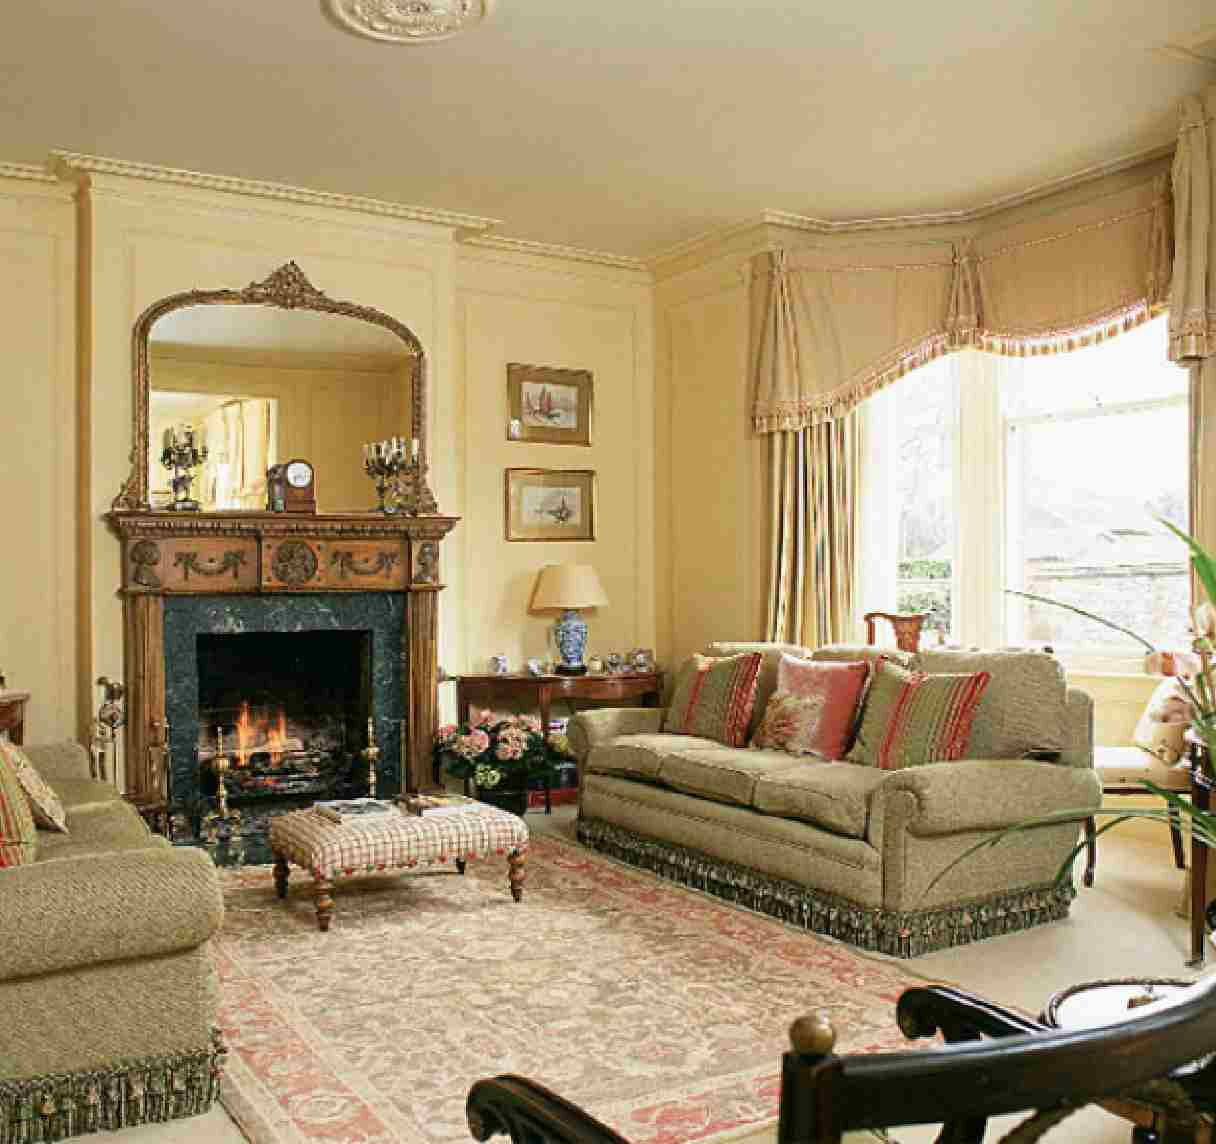 Concept With Beige Sofa Fabric Carved Wooden Fireplace With Mirror Classic Curtains Style (View 4 of 10)